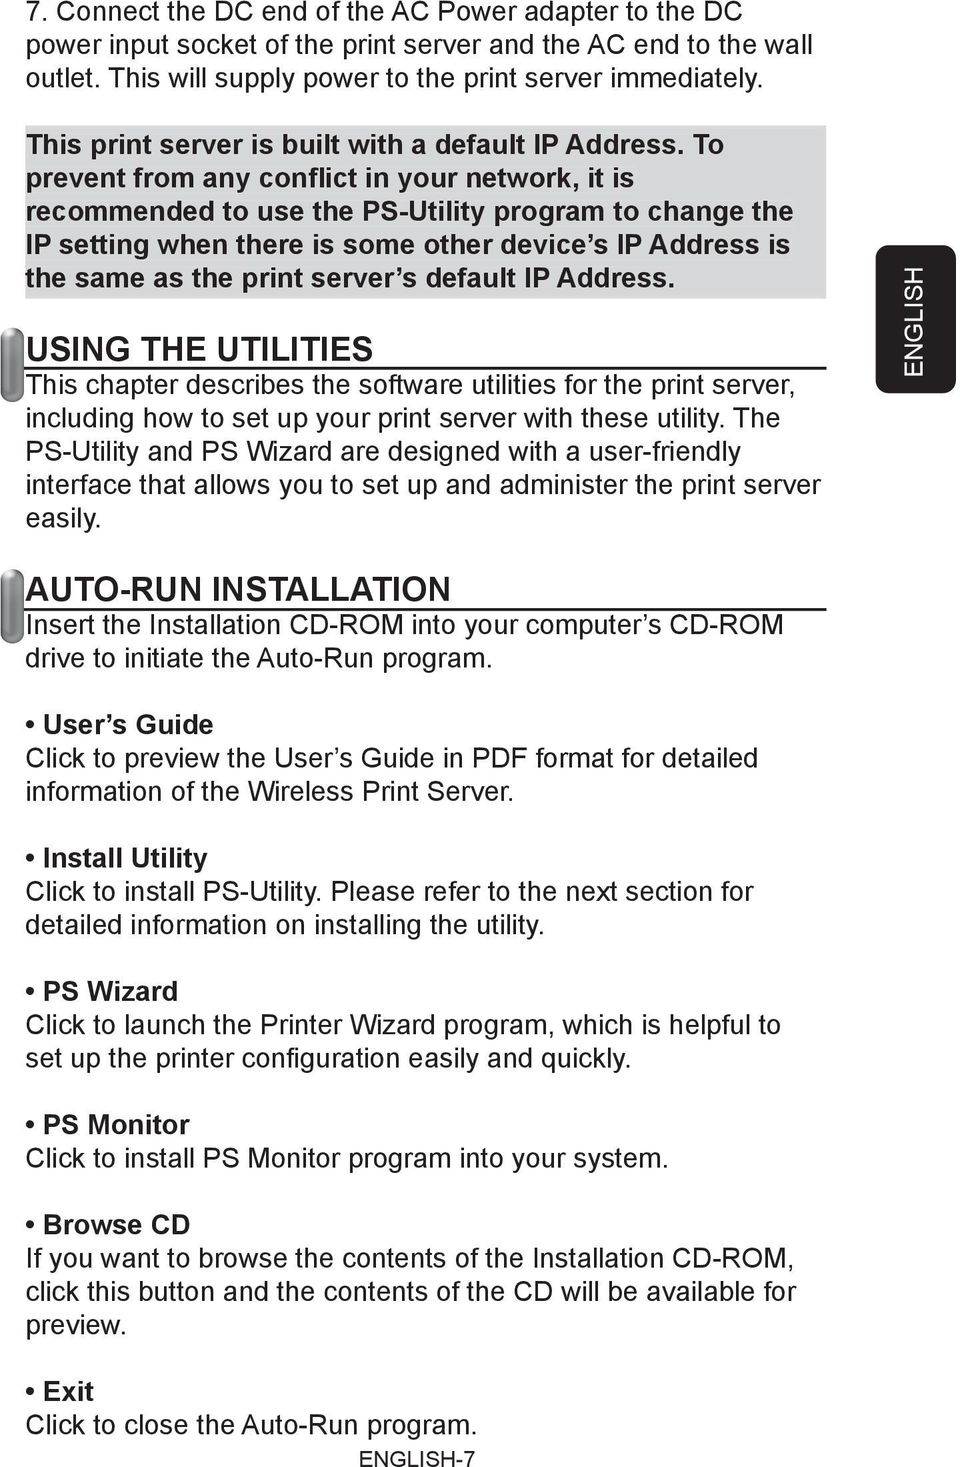 To prevent from any conflict in your network, it is recommended to use the PS-Utility program to change the IP setting when there is some other device s IP Address is the same as the print server s